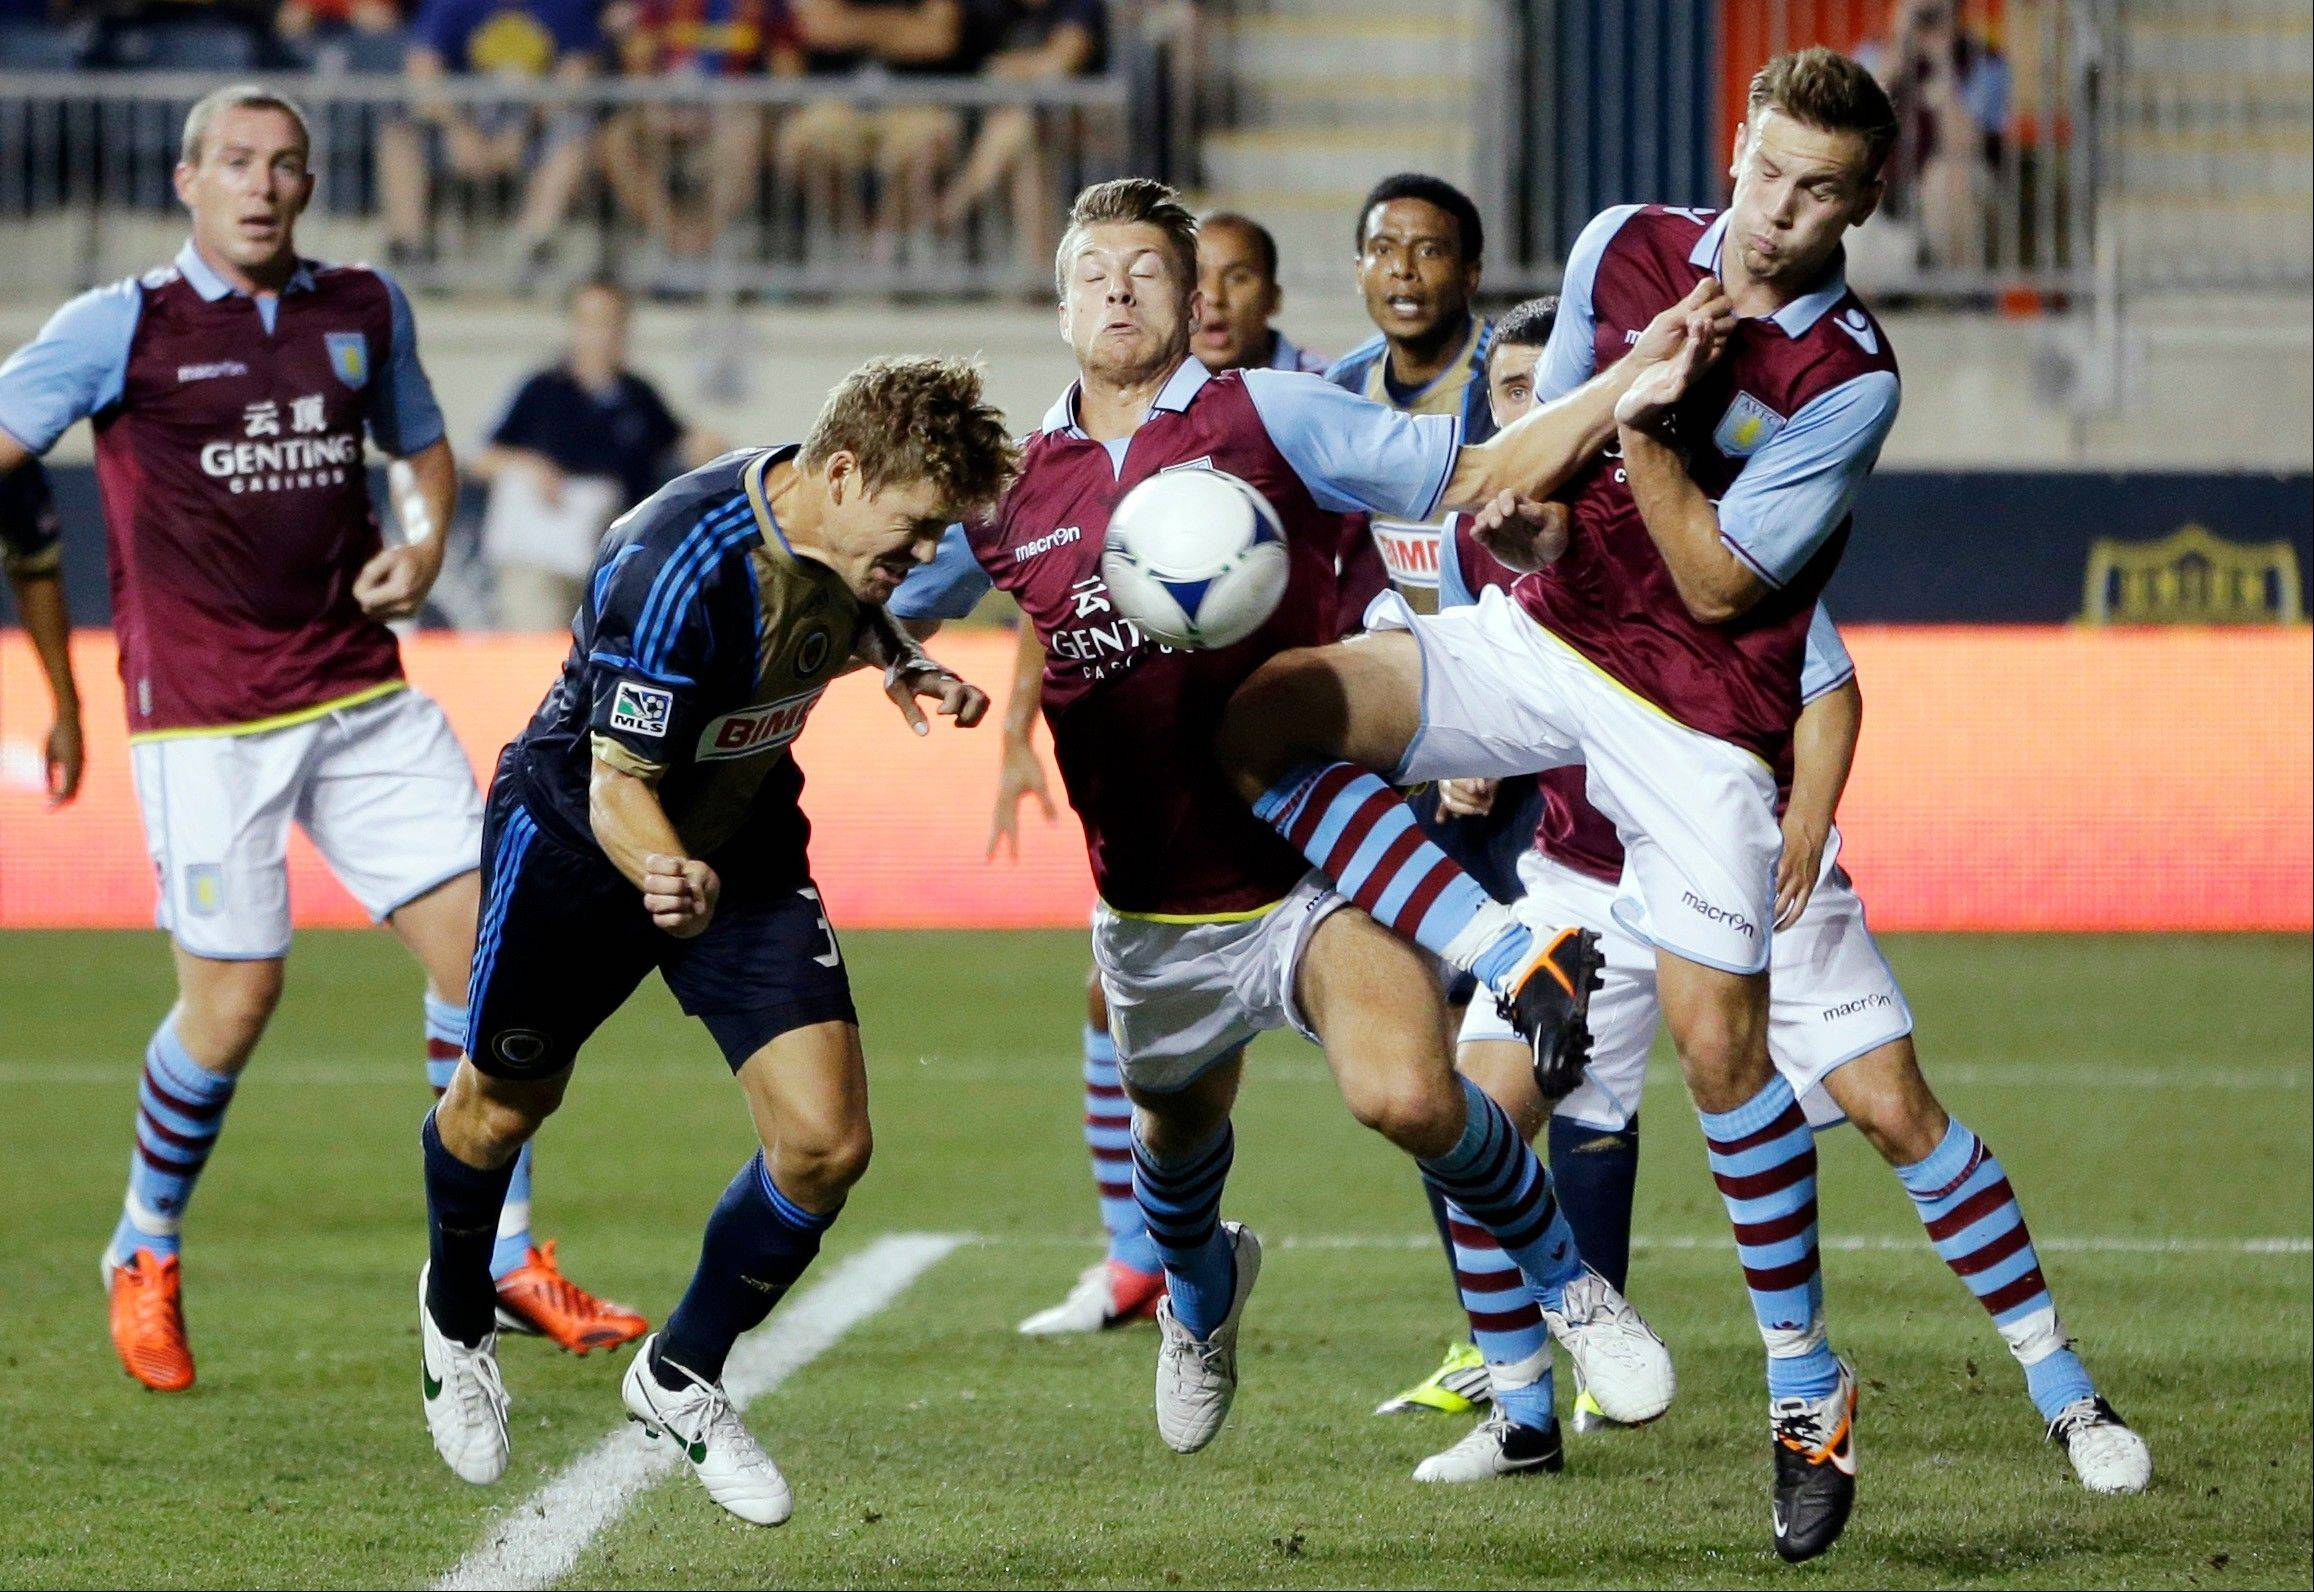 From left, Philadelphia Union's Chris Albright tries to head in the ball past Aston Villa's Nathan Baker and Andreas Weimann in a friendly soccer match Wednesday. Aston Villa, which won that match 1-0, plays the Fire at Toyota Park Saturday night.